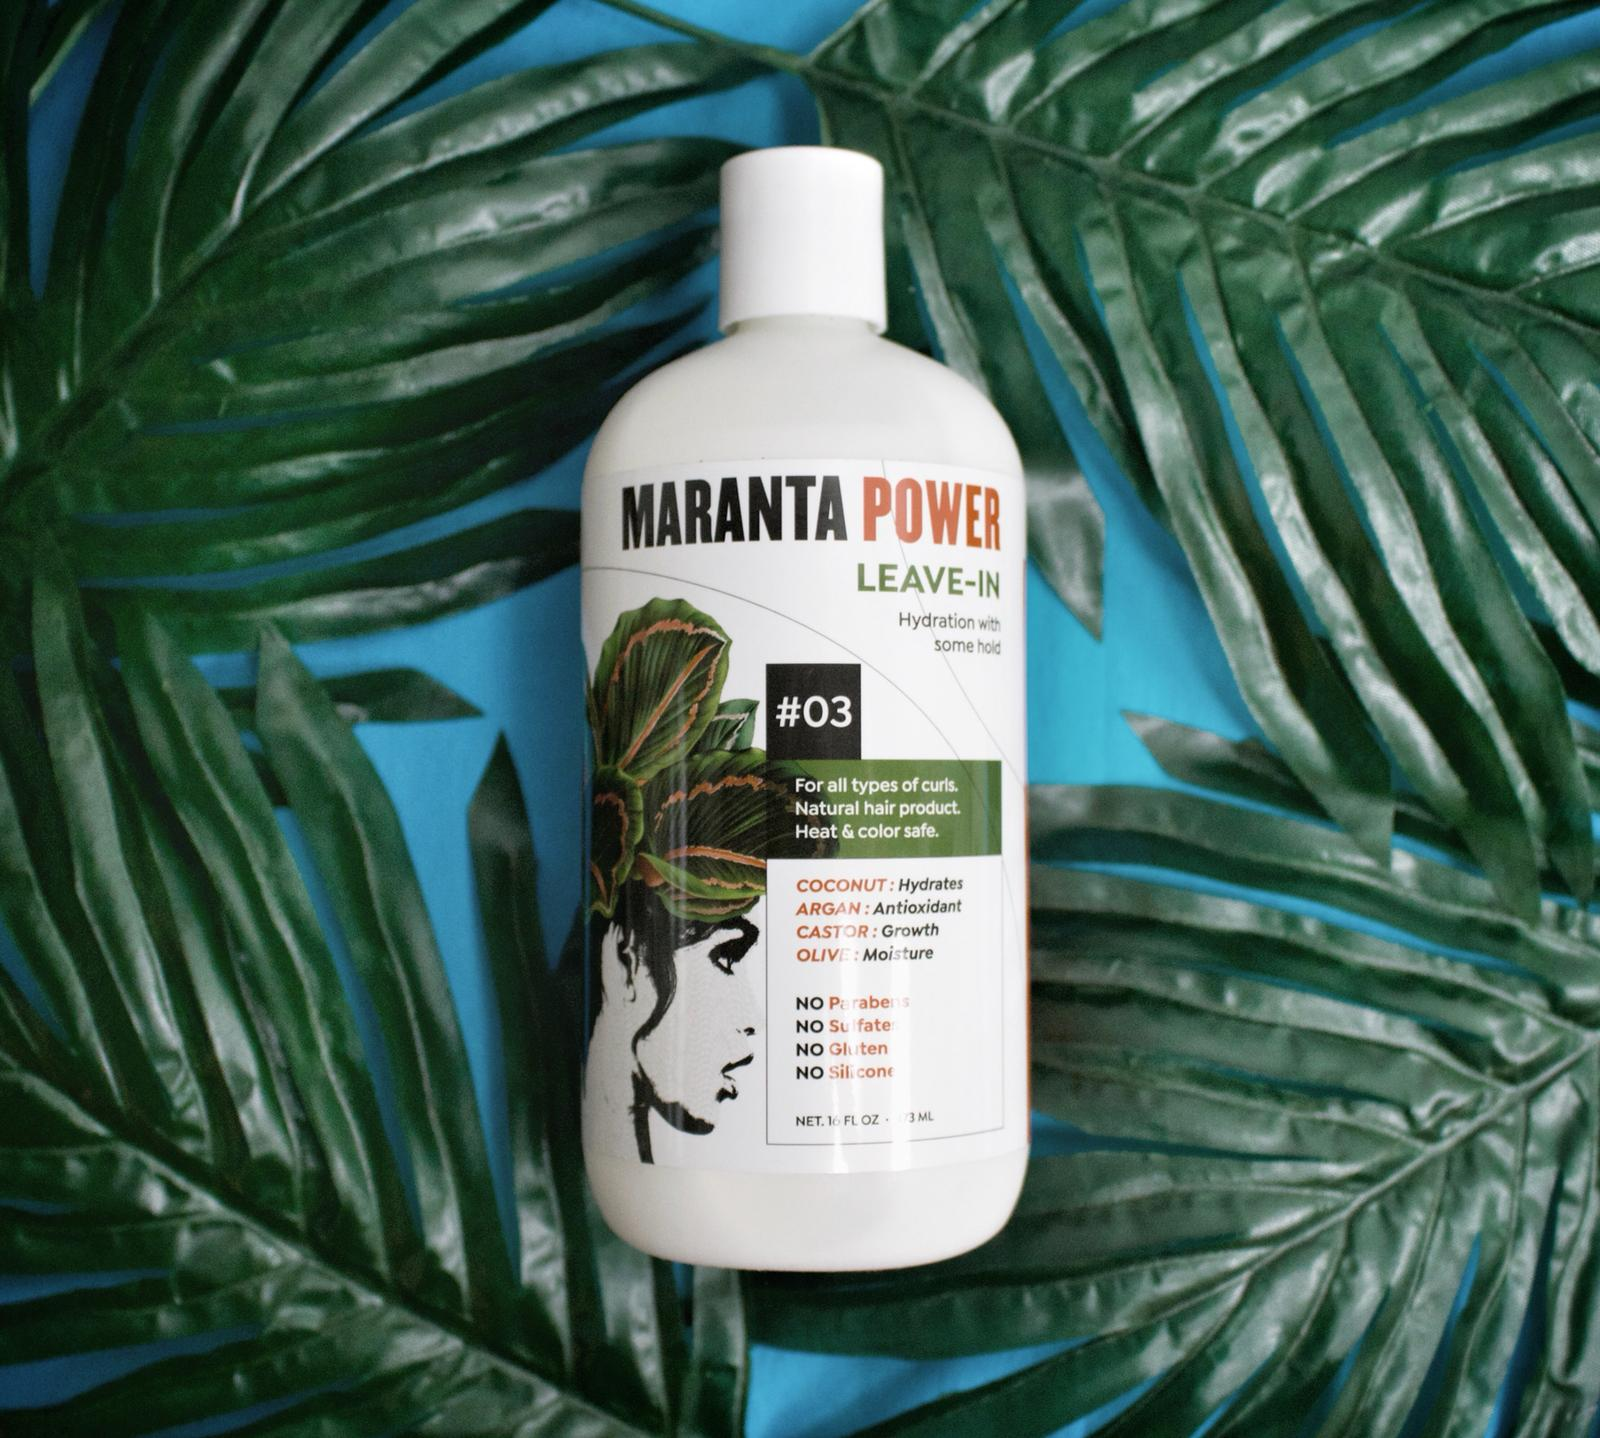 Maranta Power